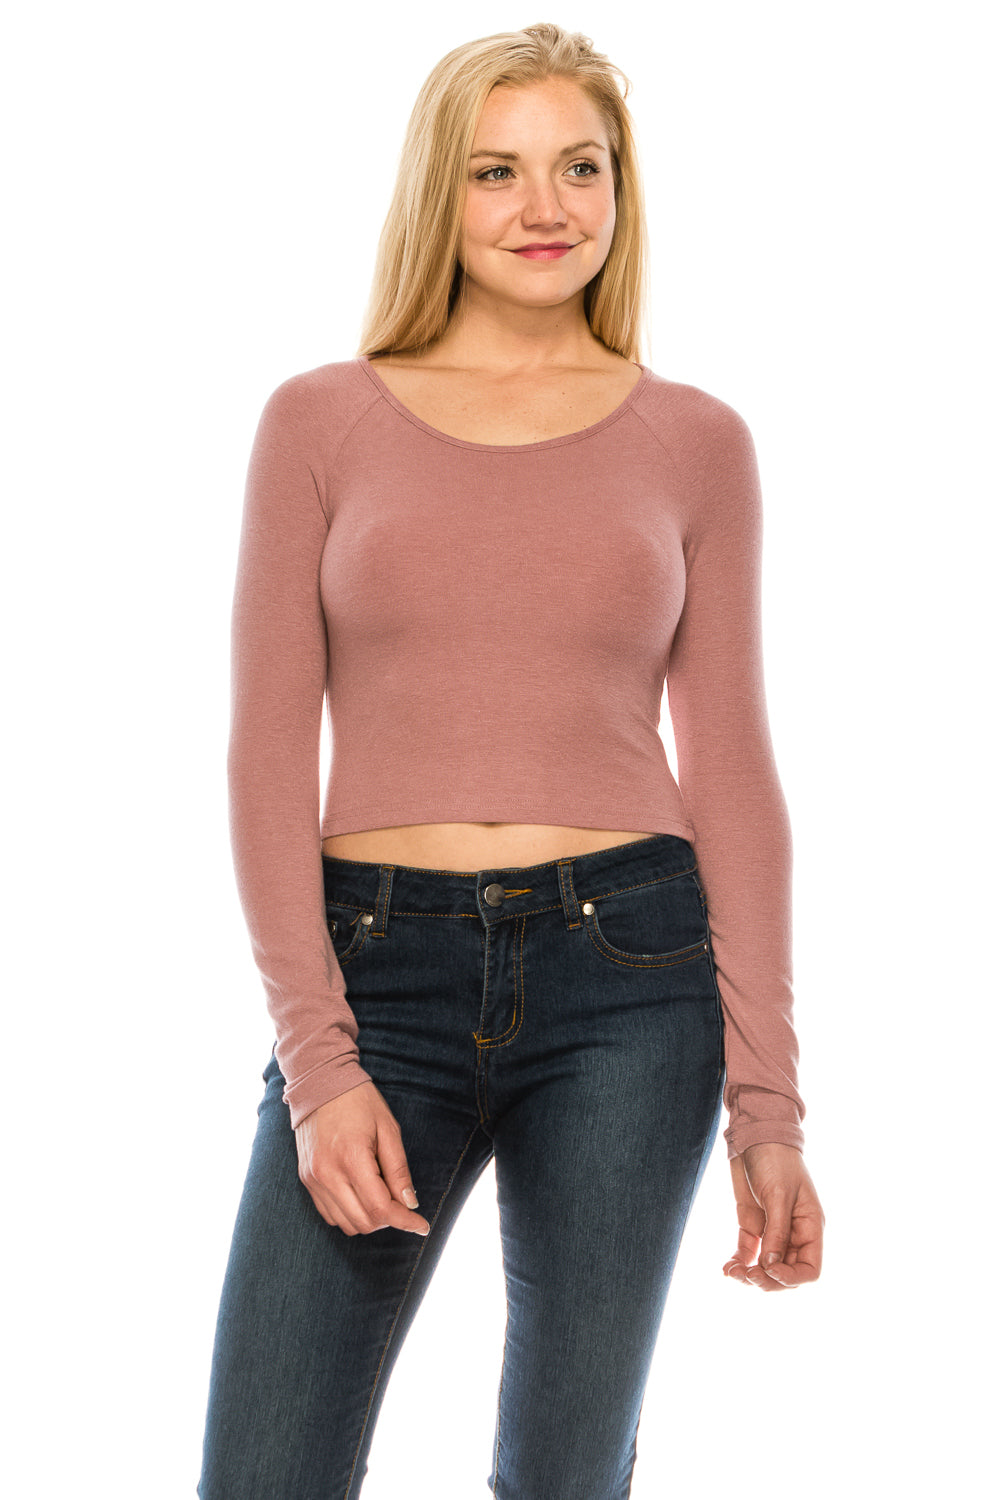 Women's Brushed  Knit Long Sleeve Scoop Neck Crop Top Sweater